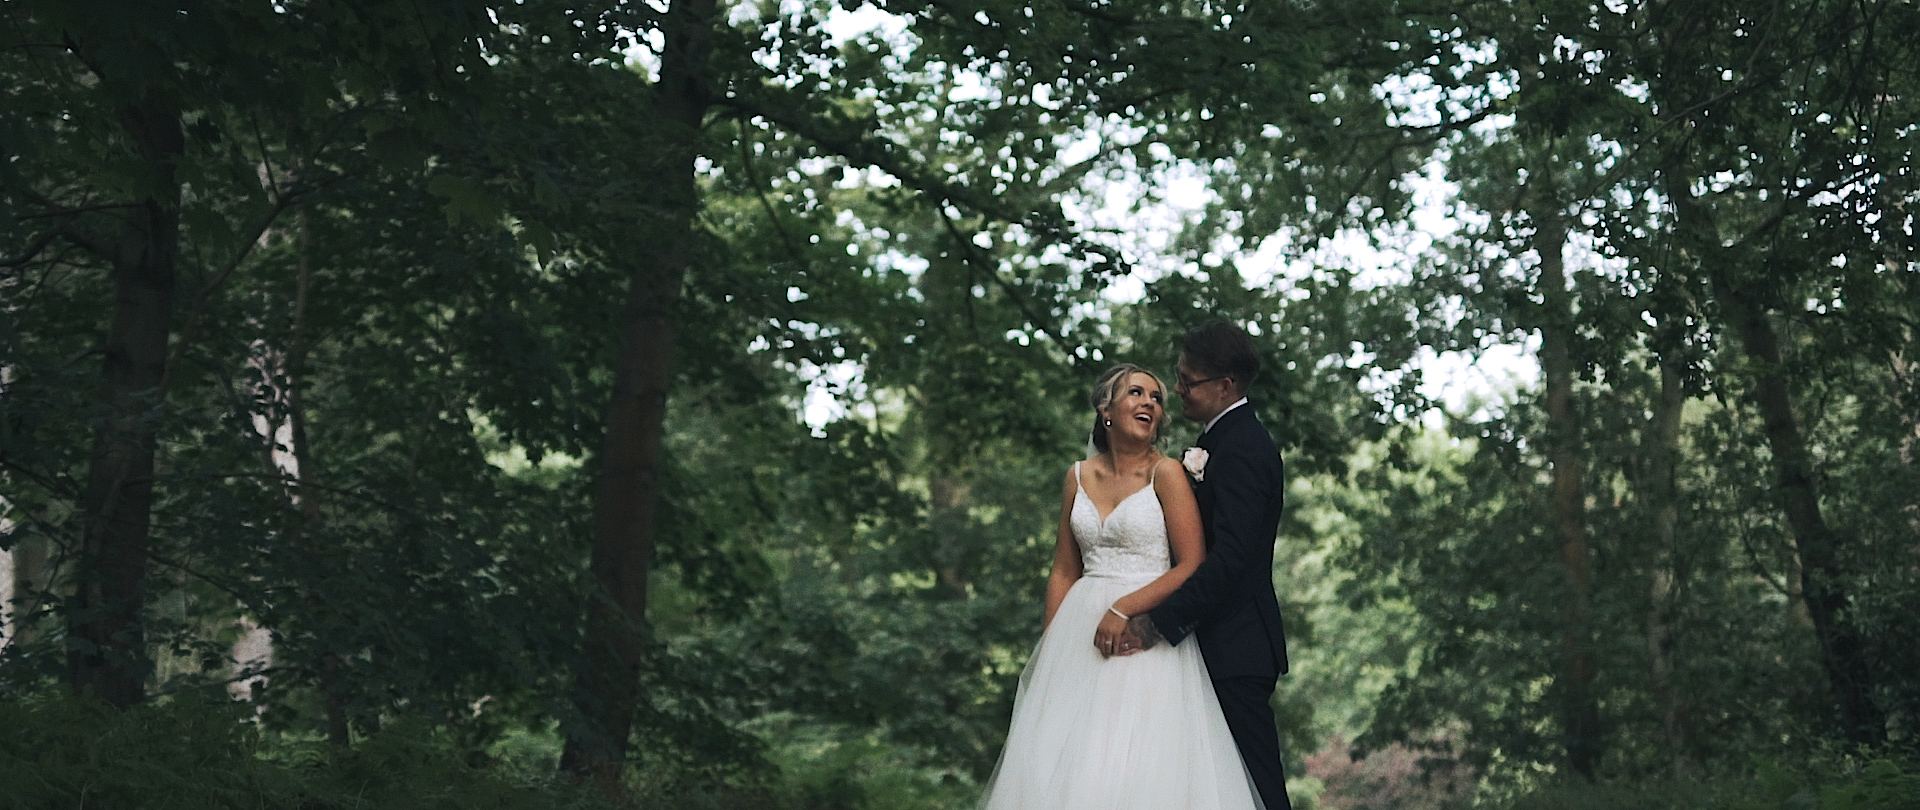 Marks Hall Wedding Video - Philip Smith Visuals